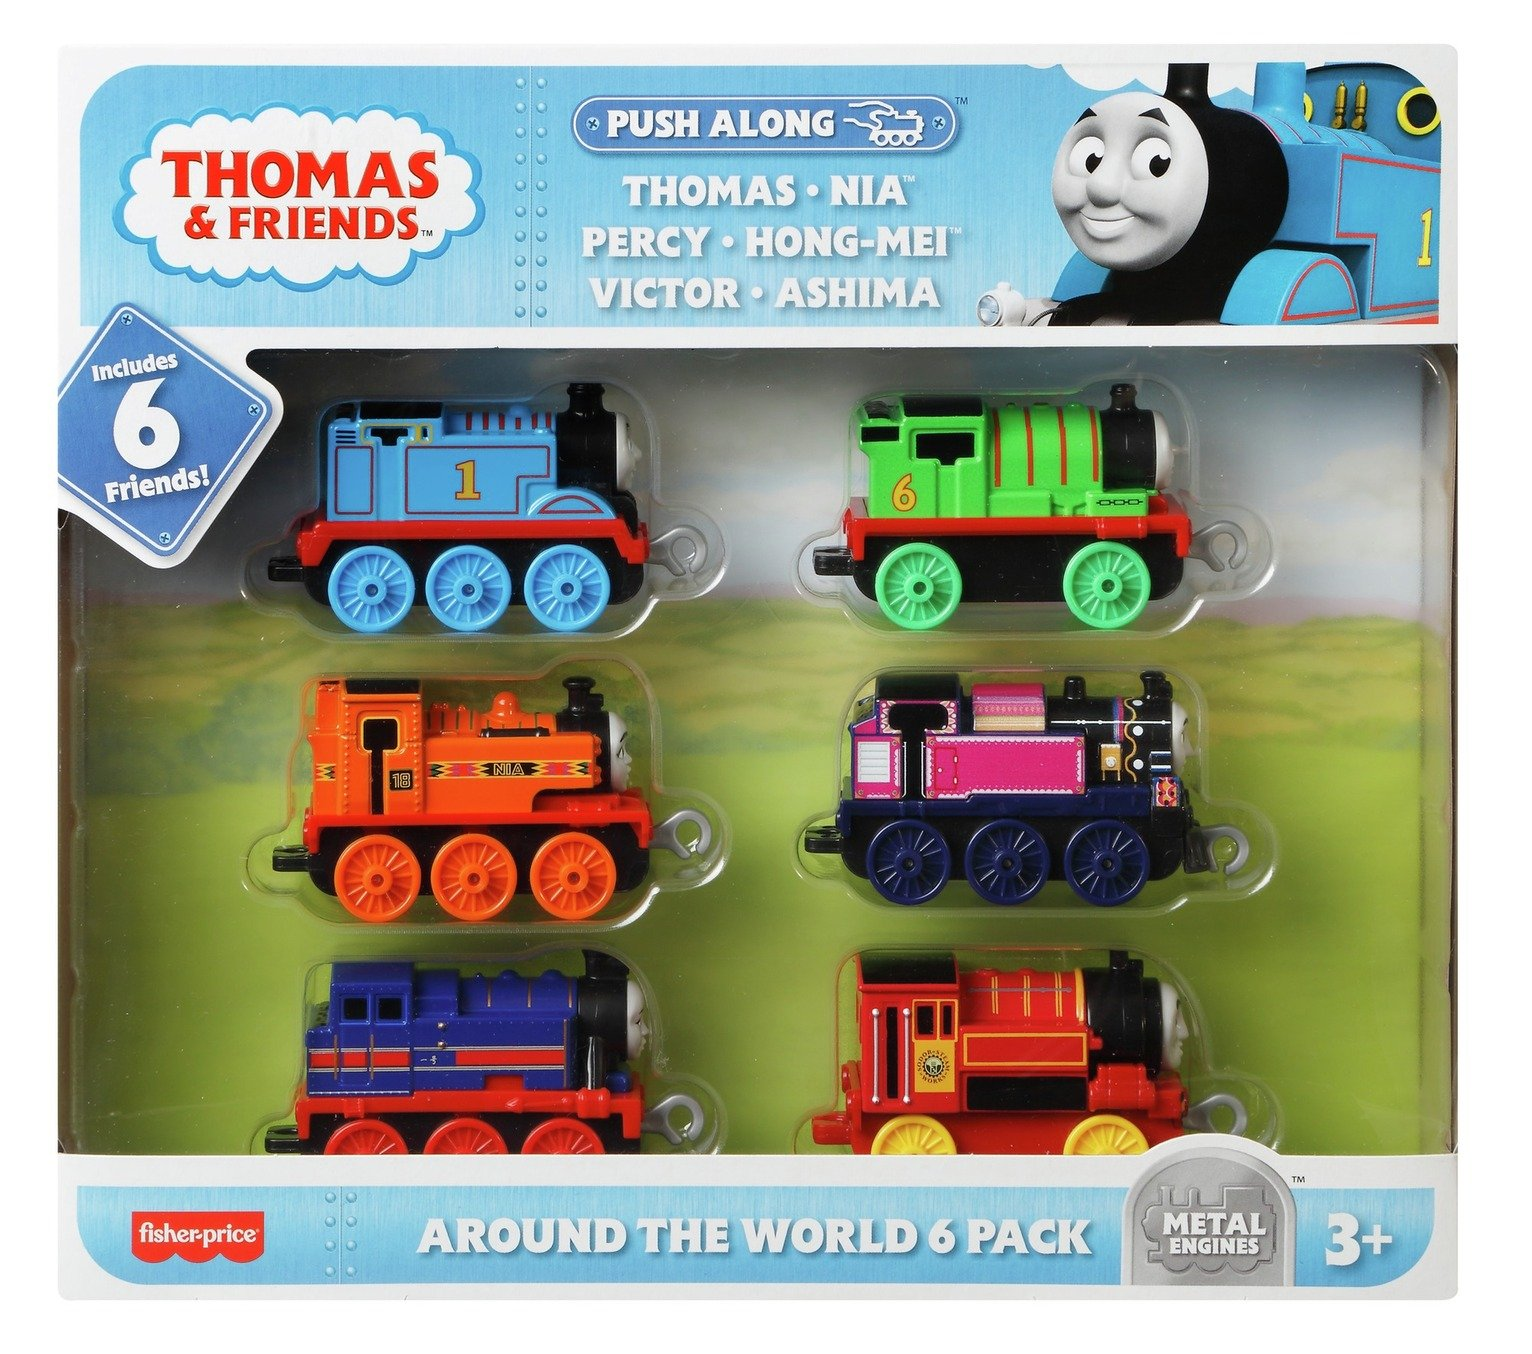 Thomas & Friends All Around the World 6 Pack TrackMaster